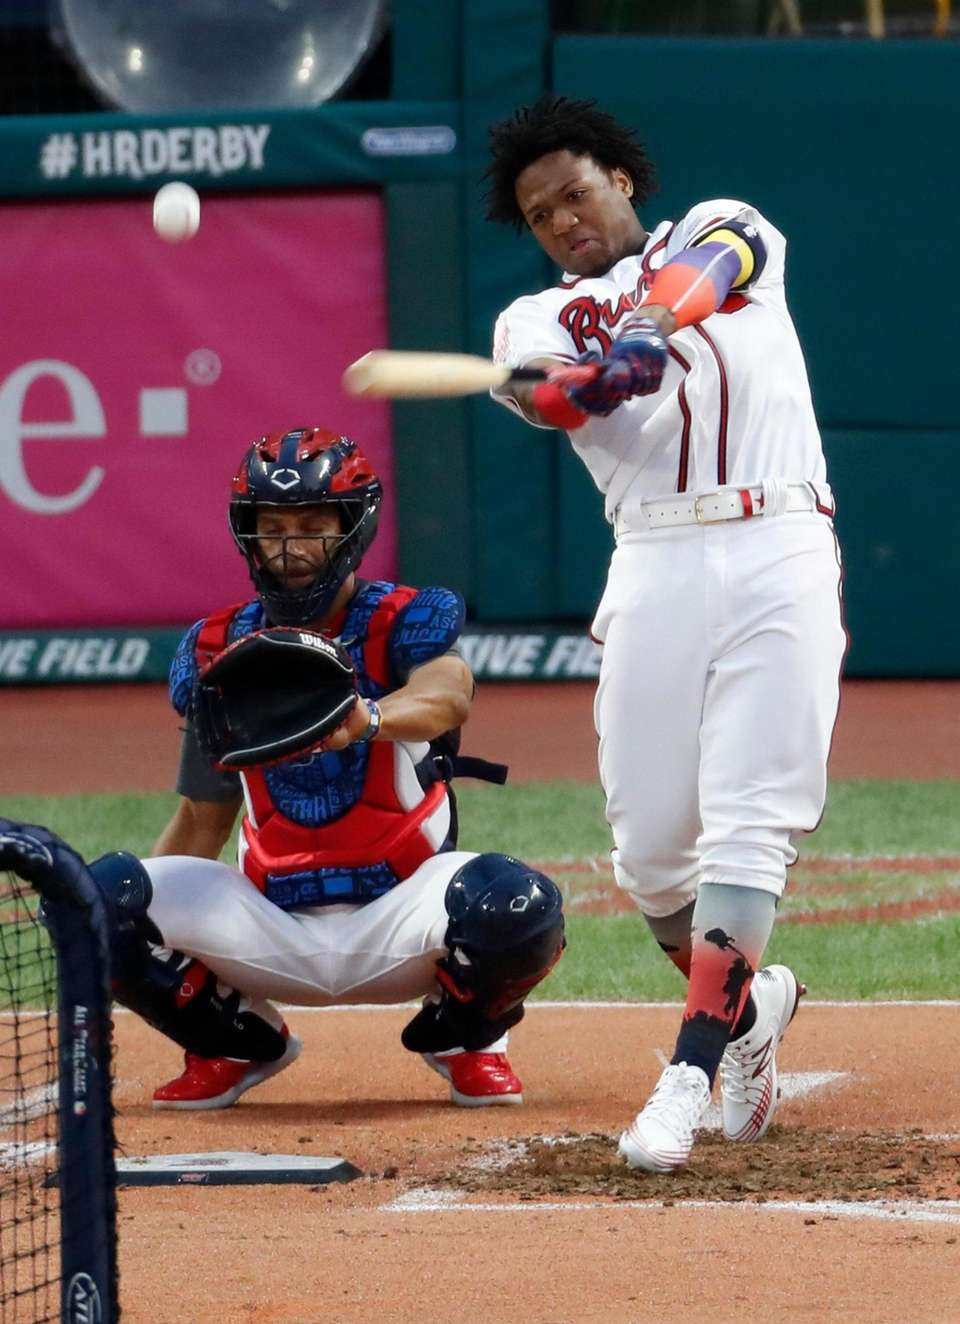 Ronald Acuna Jr., of the Atlanta Braves, hits